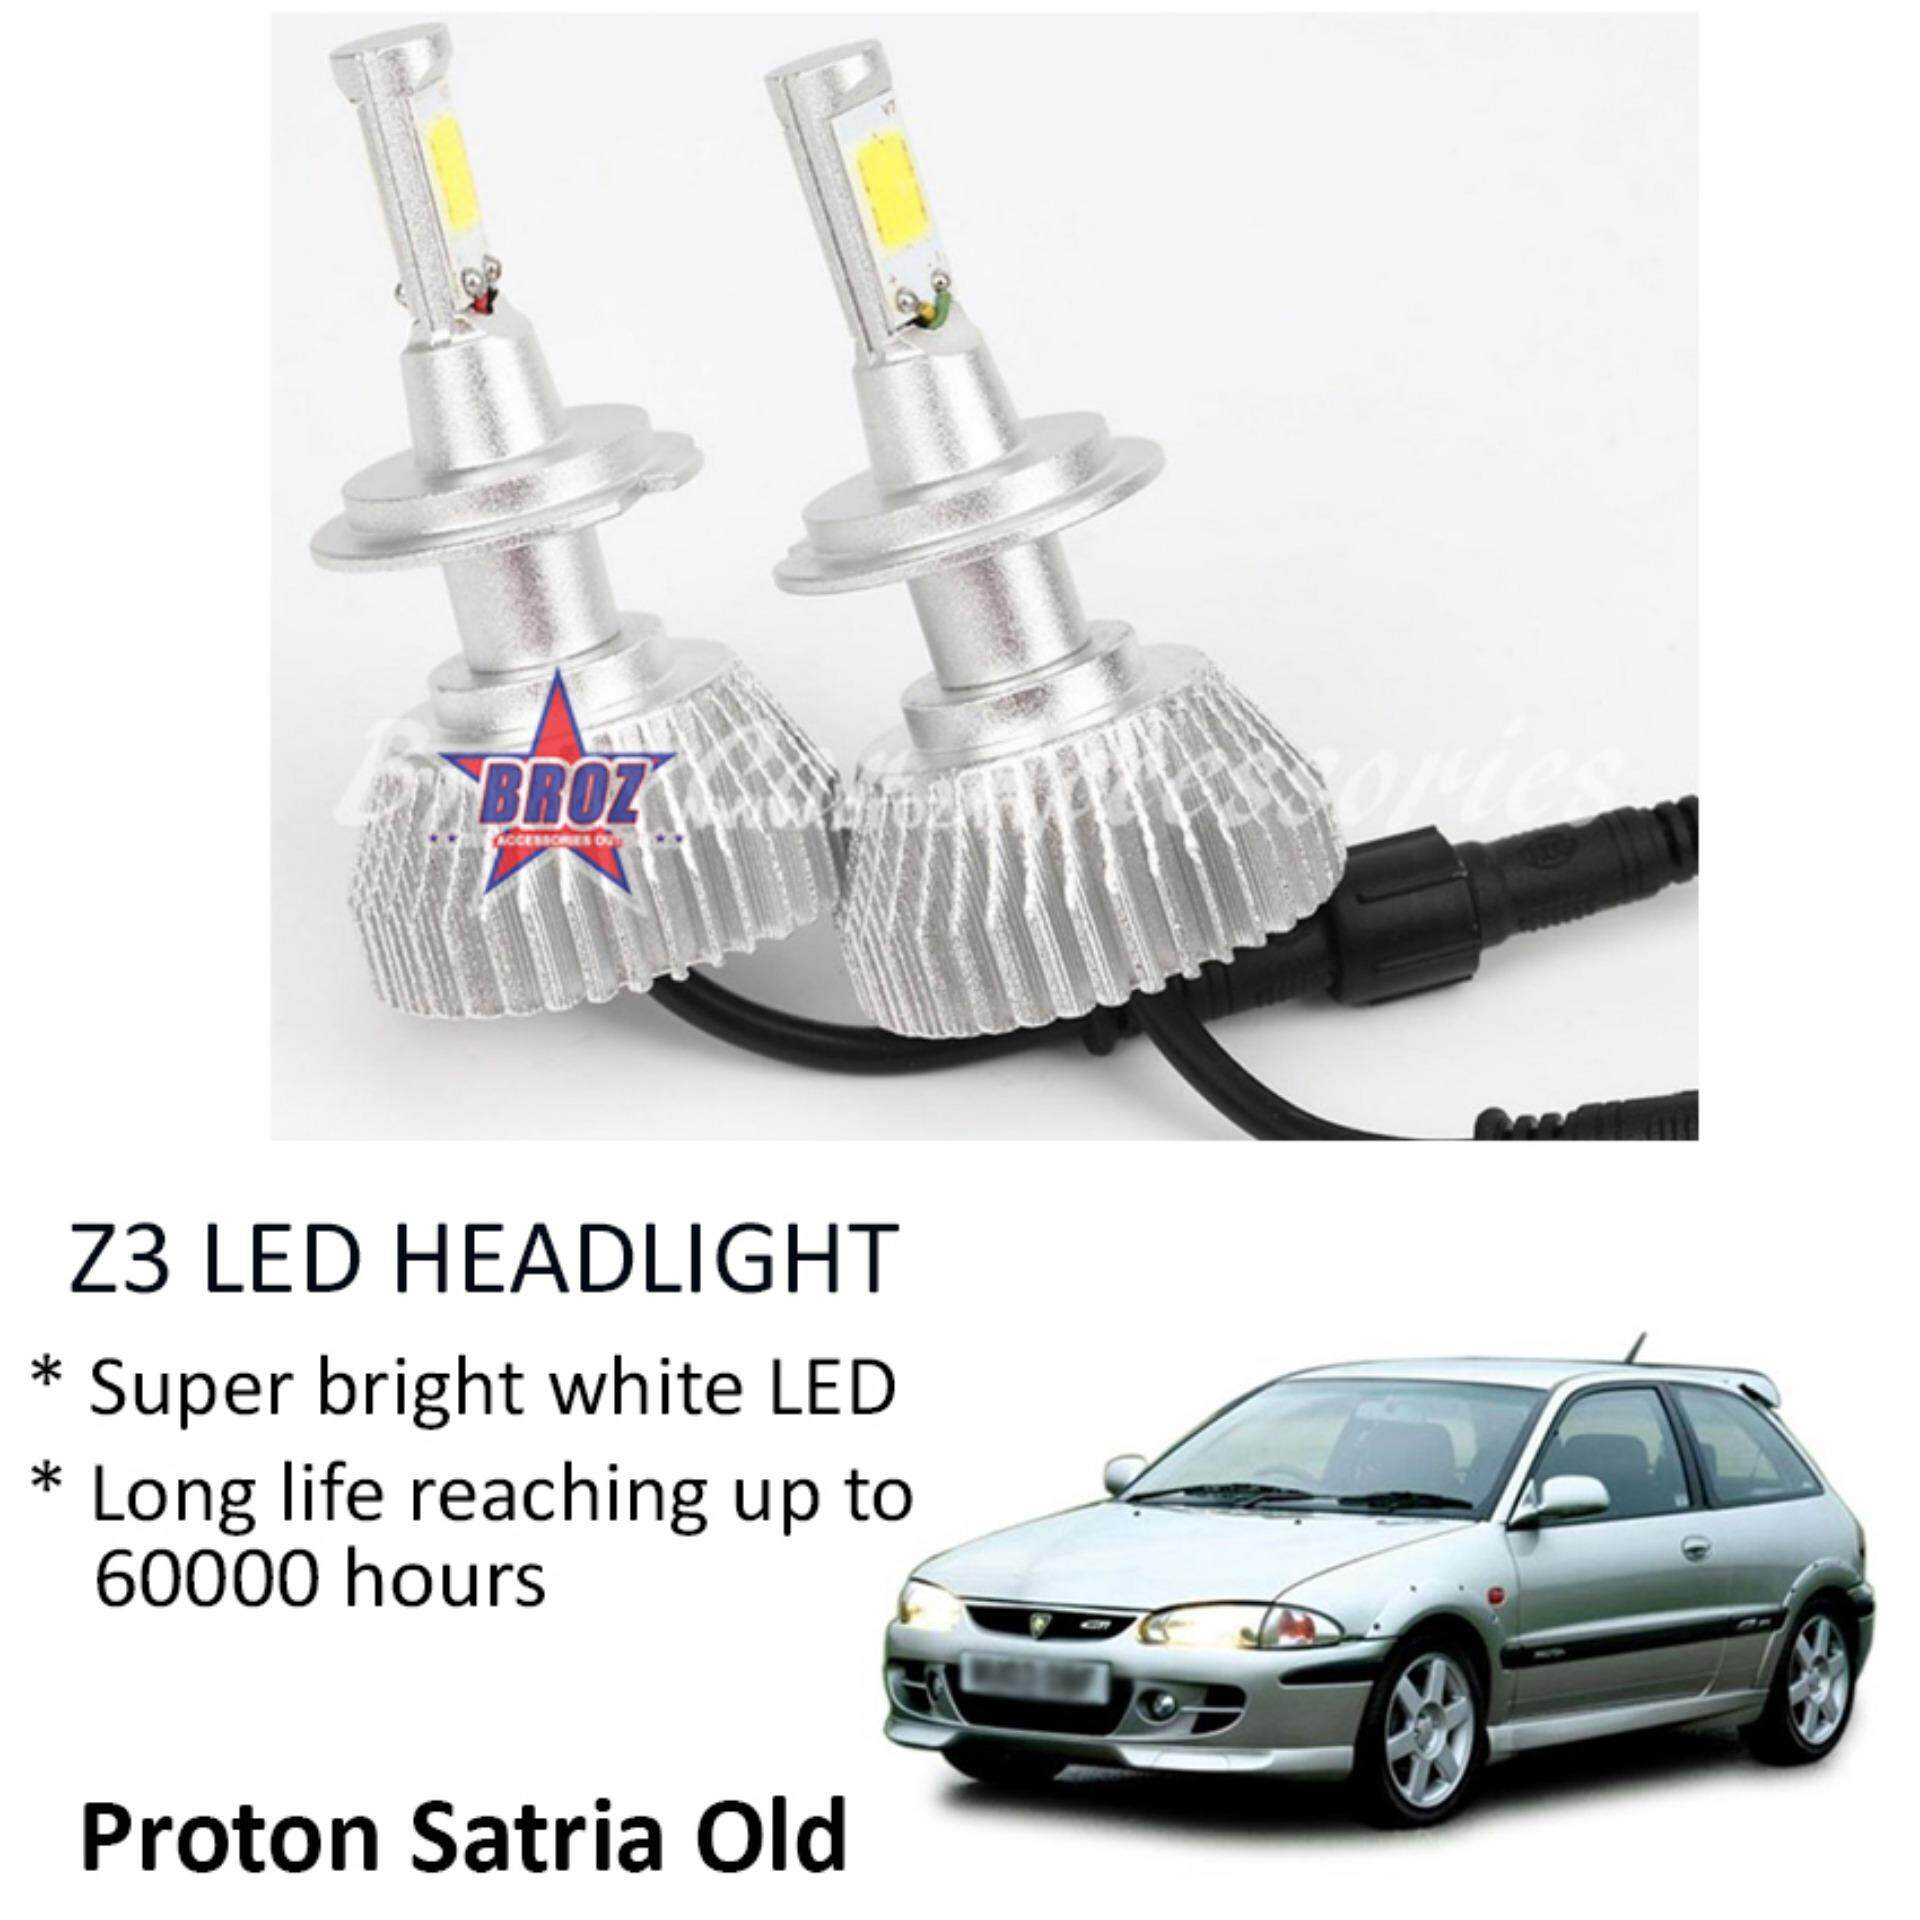 Proton Satria Old (Head Lamp) Z3 LED Light Car Headlight Auto Head light Lamp 6000k White Light